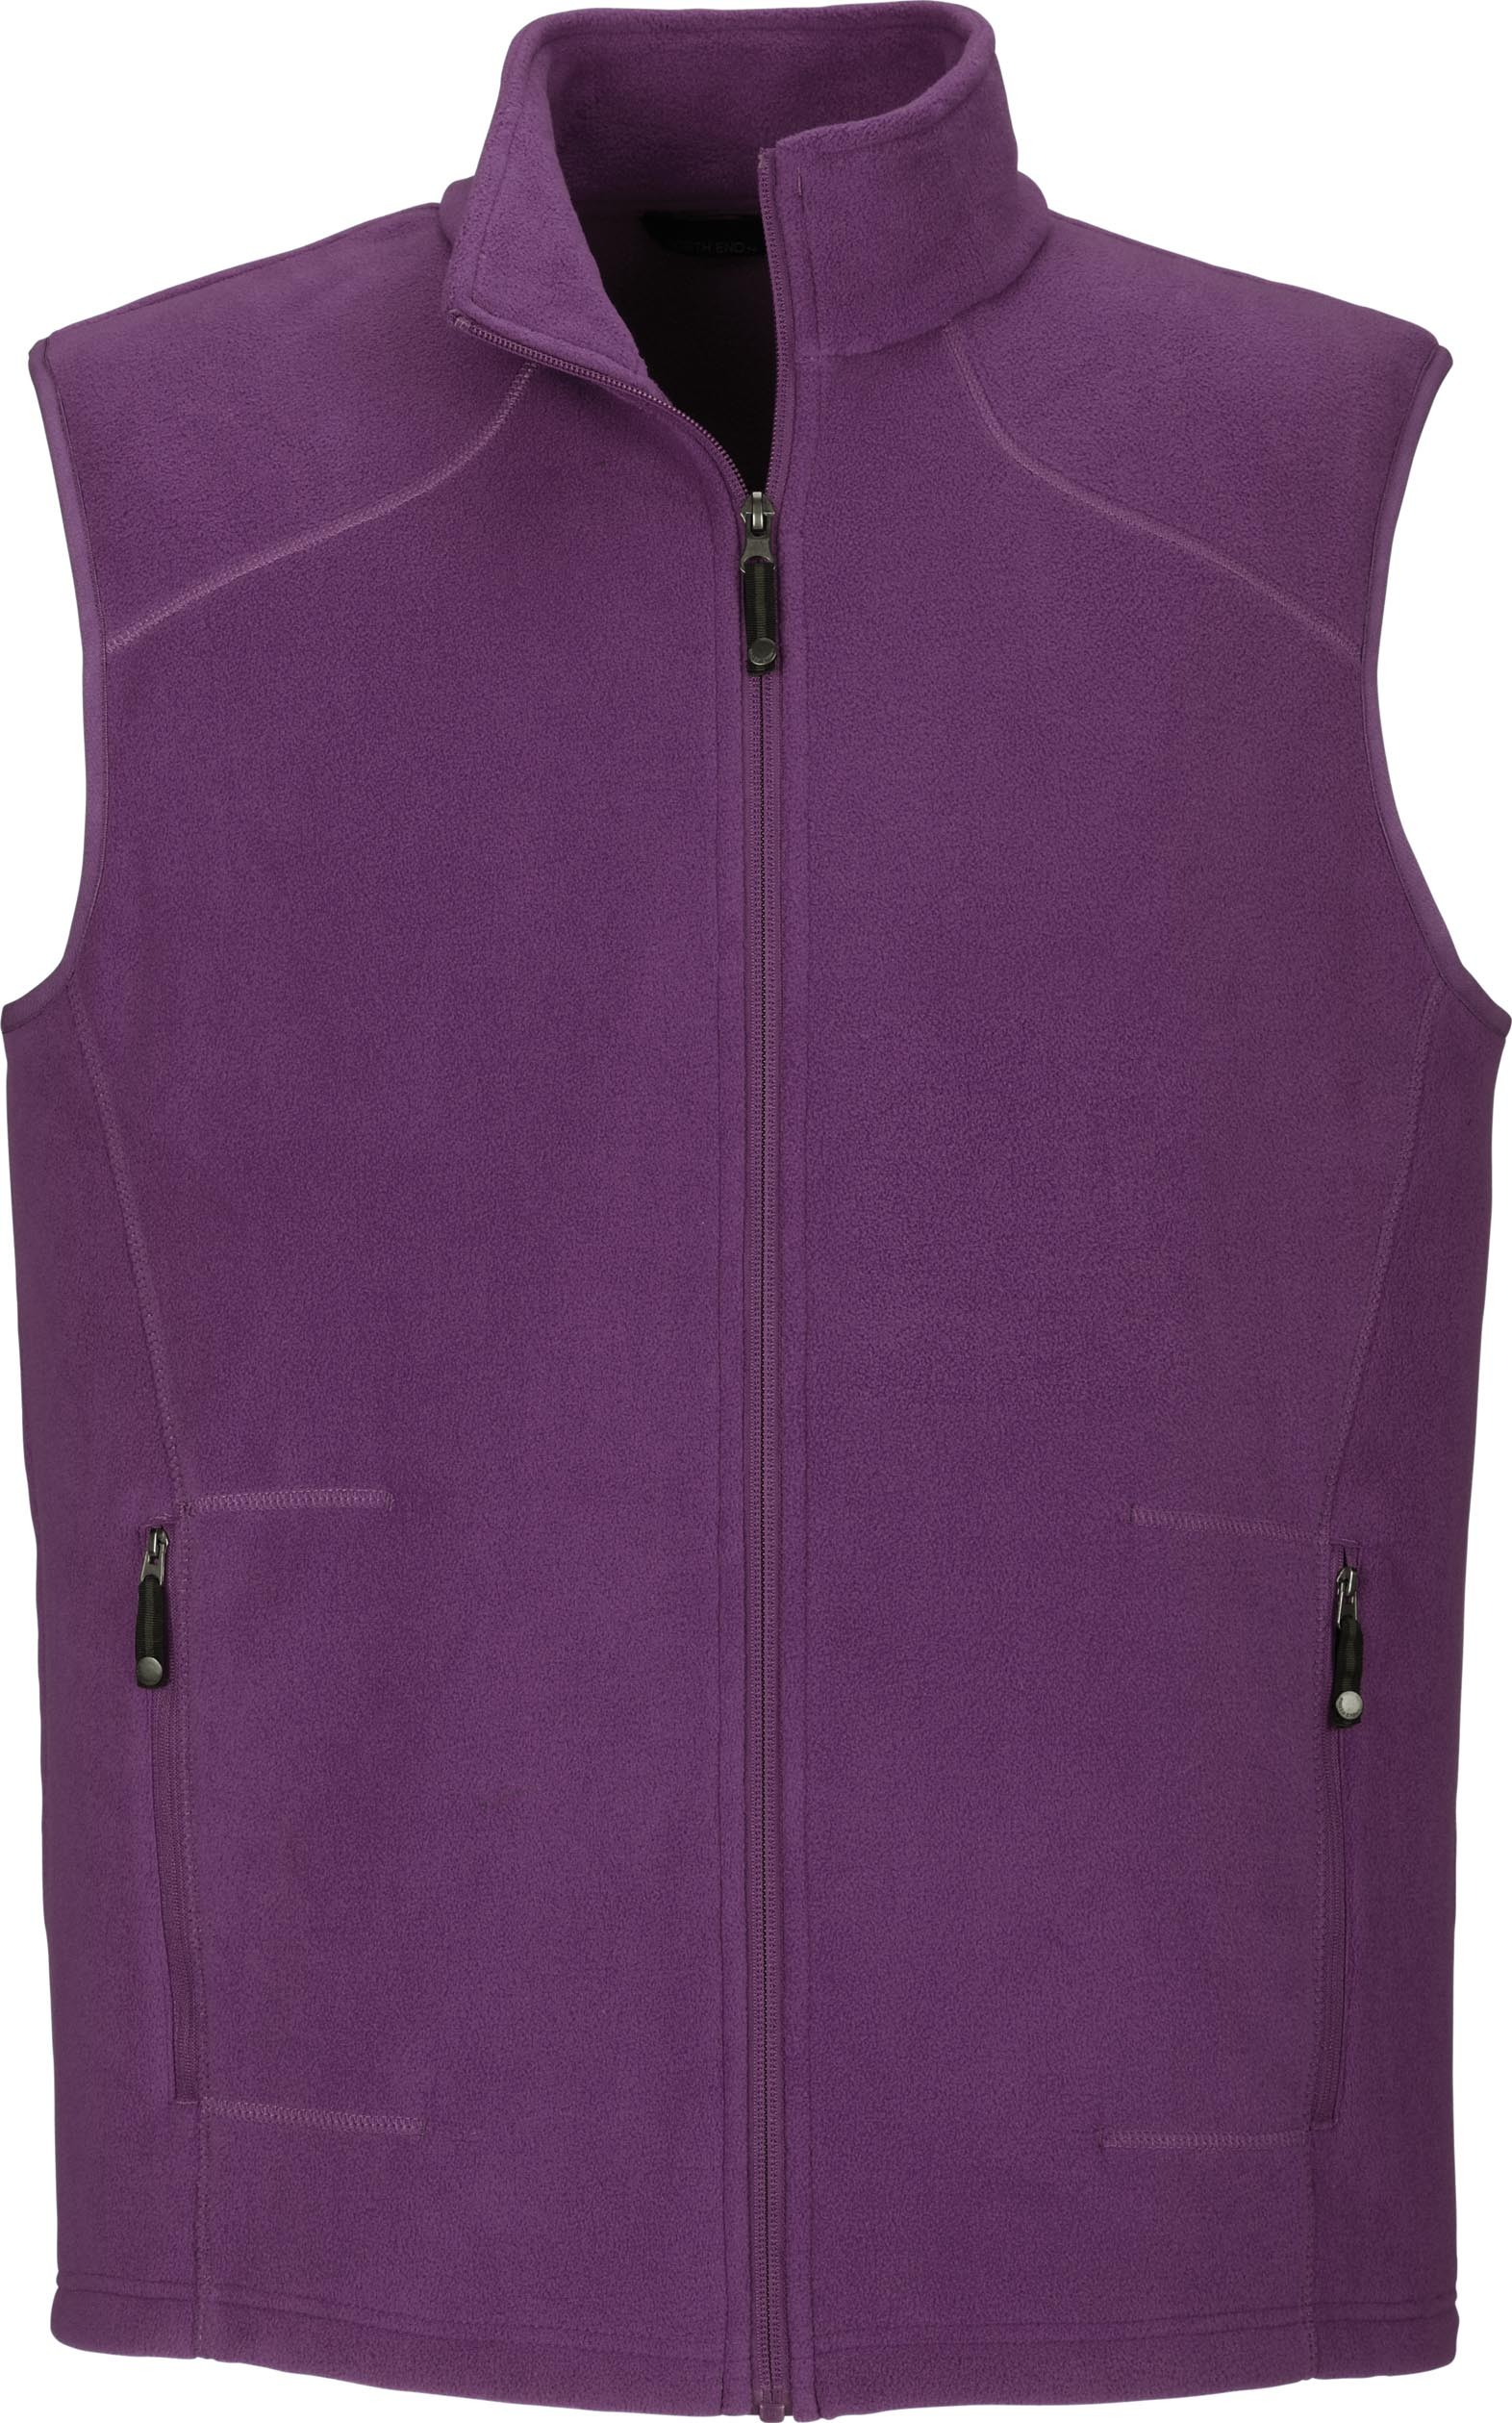 Ash City Vests 88173 - Voyage Men's Fleece Vest